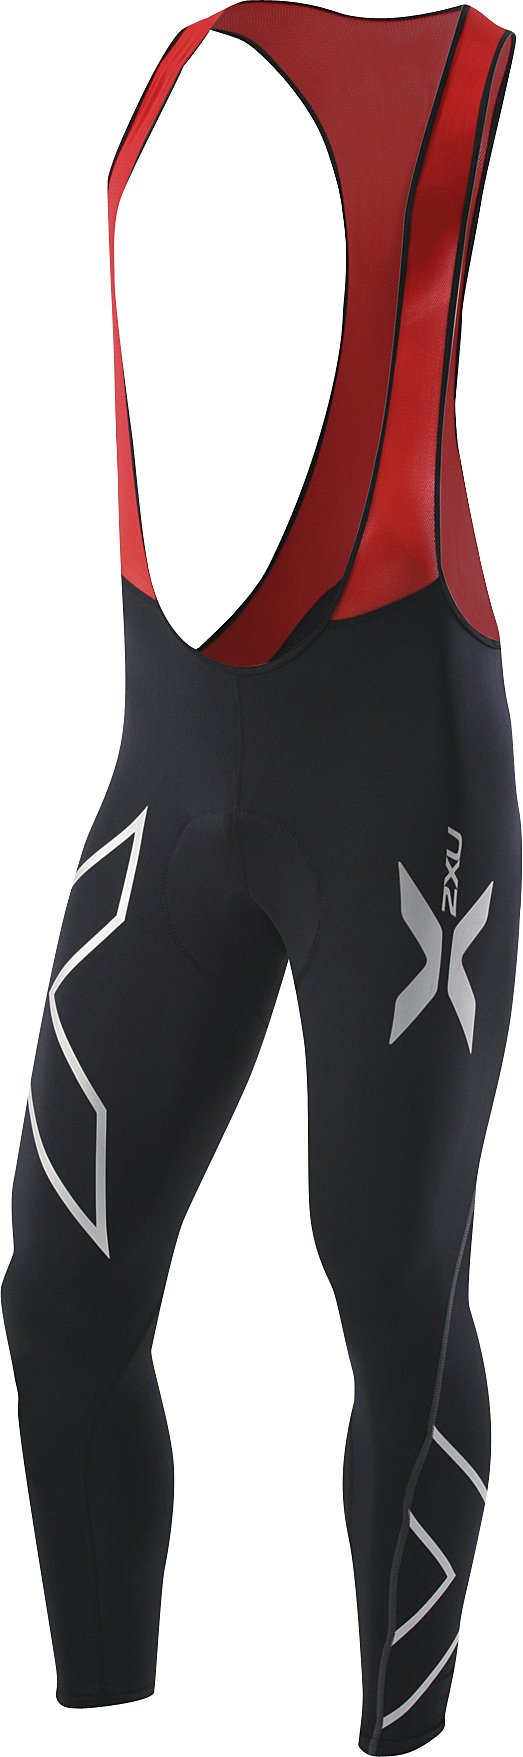 2XU Men's Compression Cycle Bib Tights, Black/Red, Small